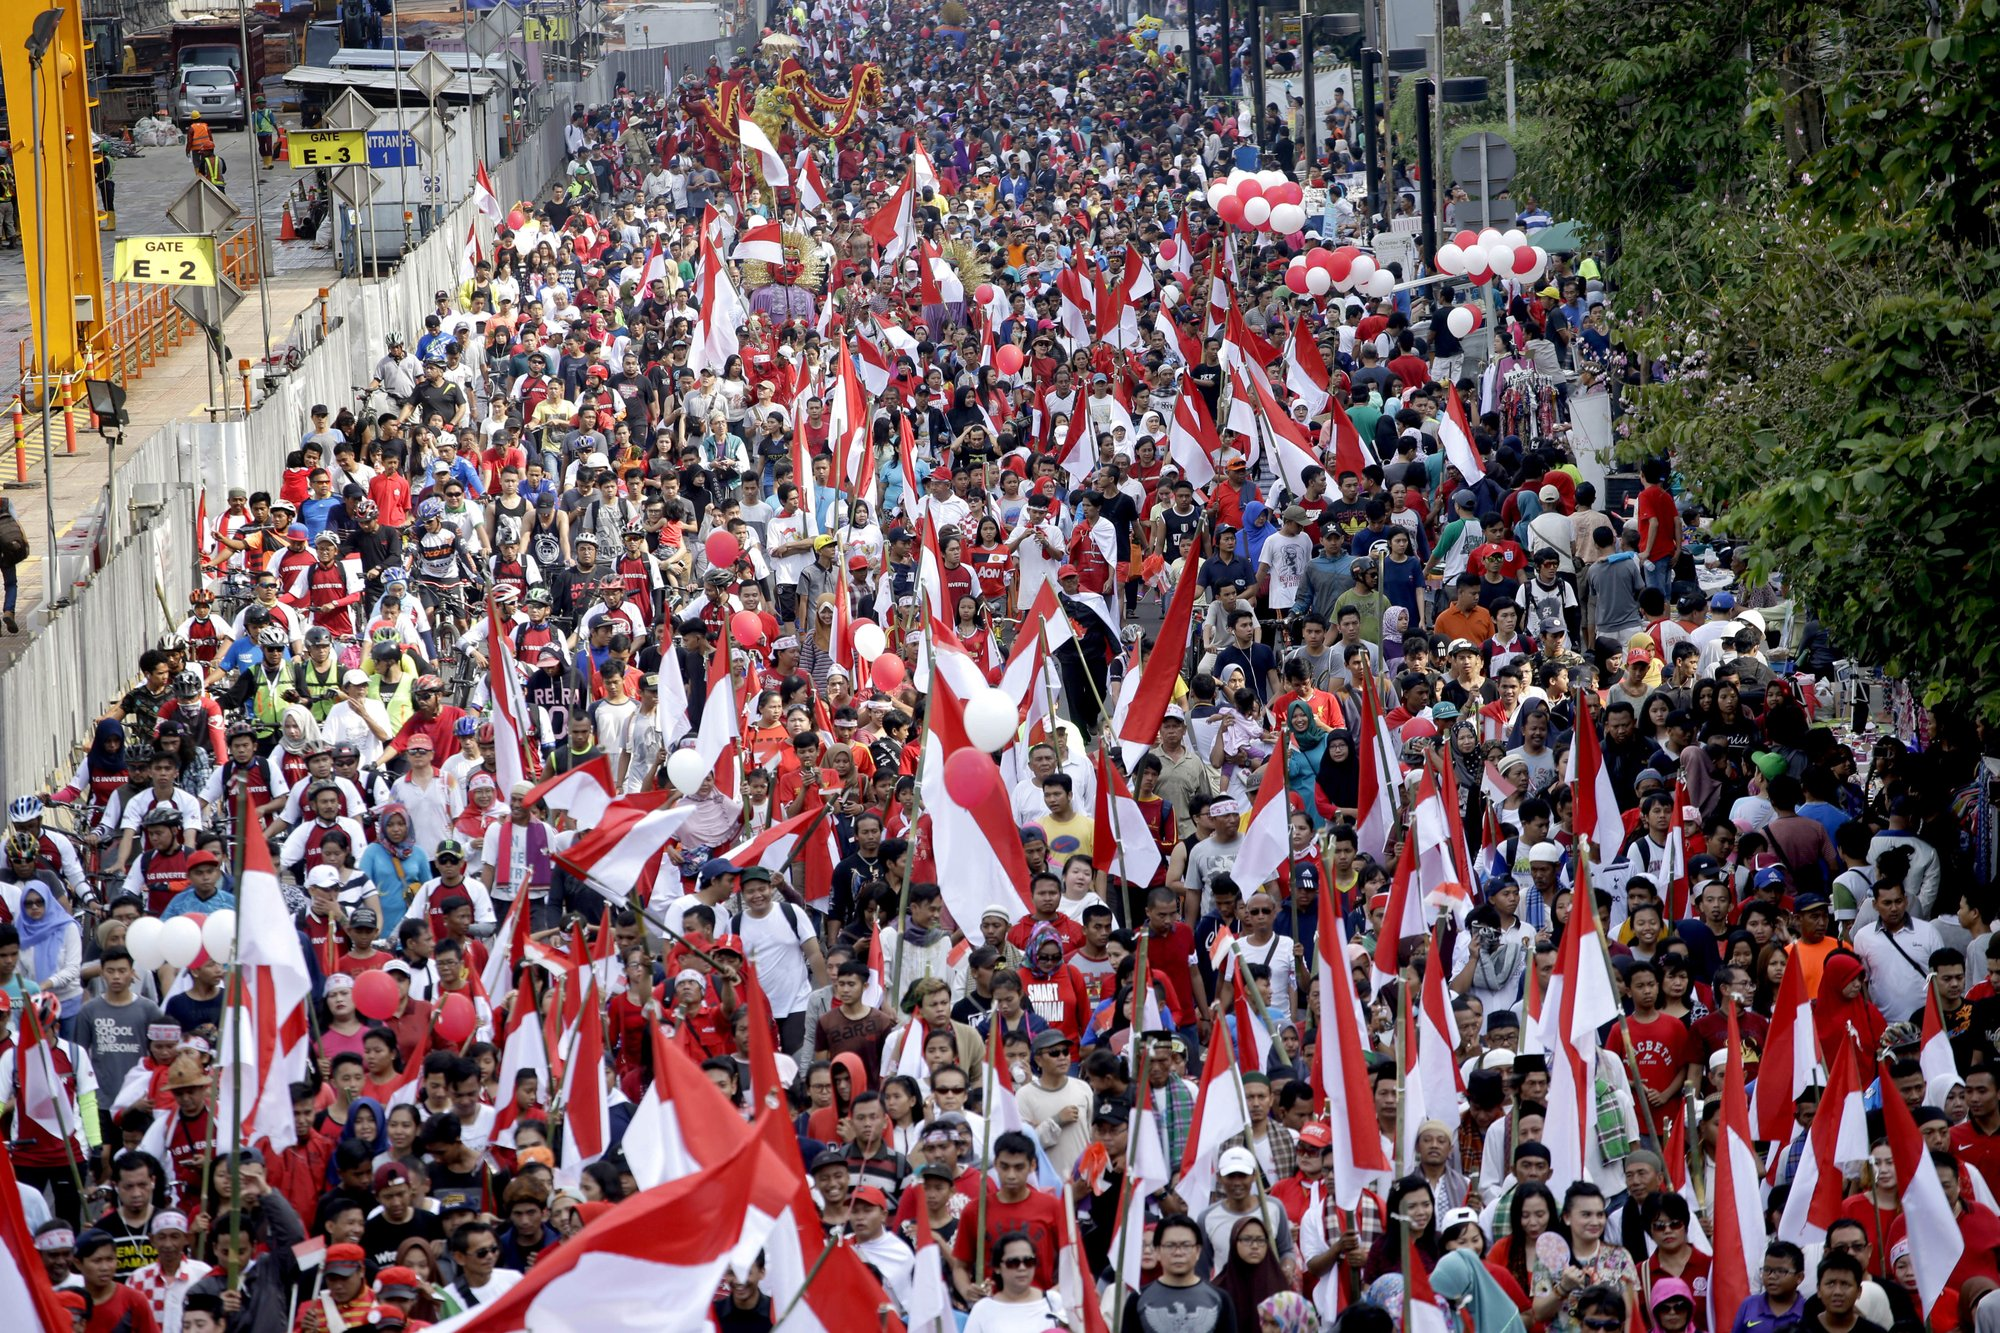 Jakarta rally calls for tolerance after blasphemy probe